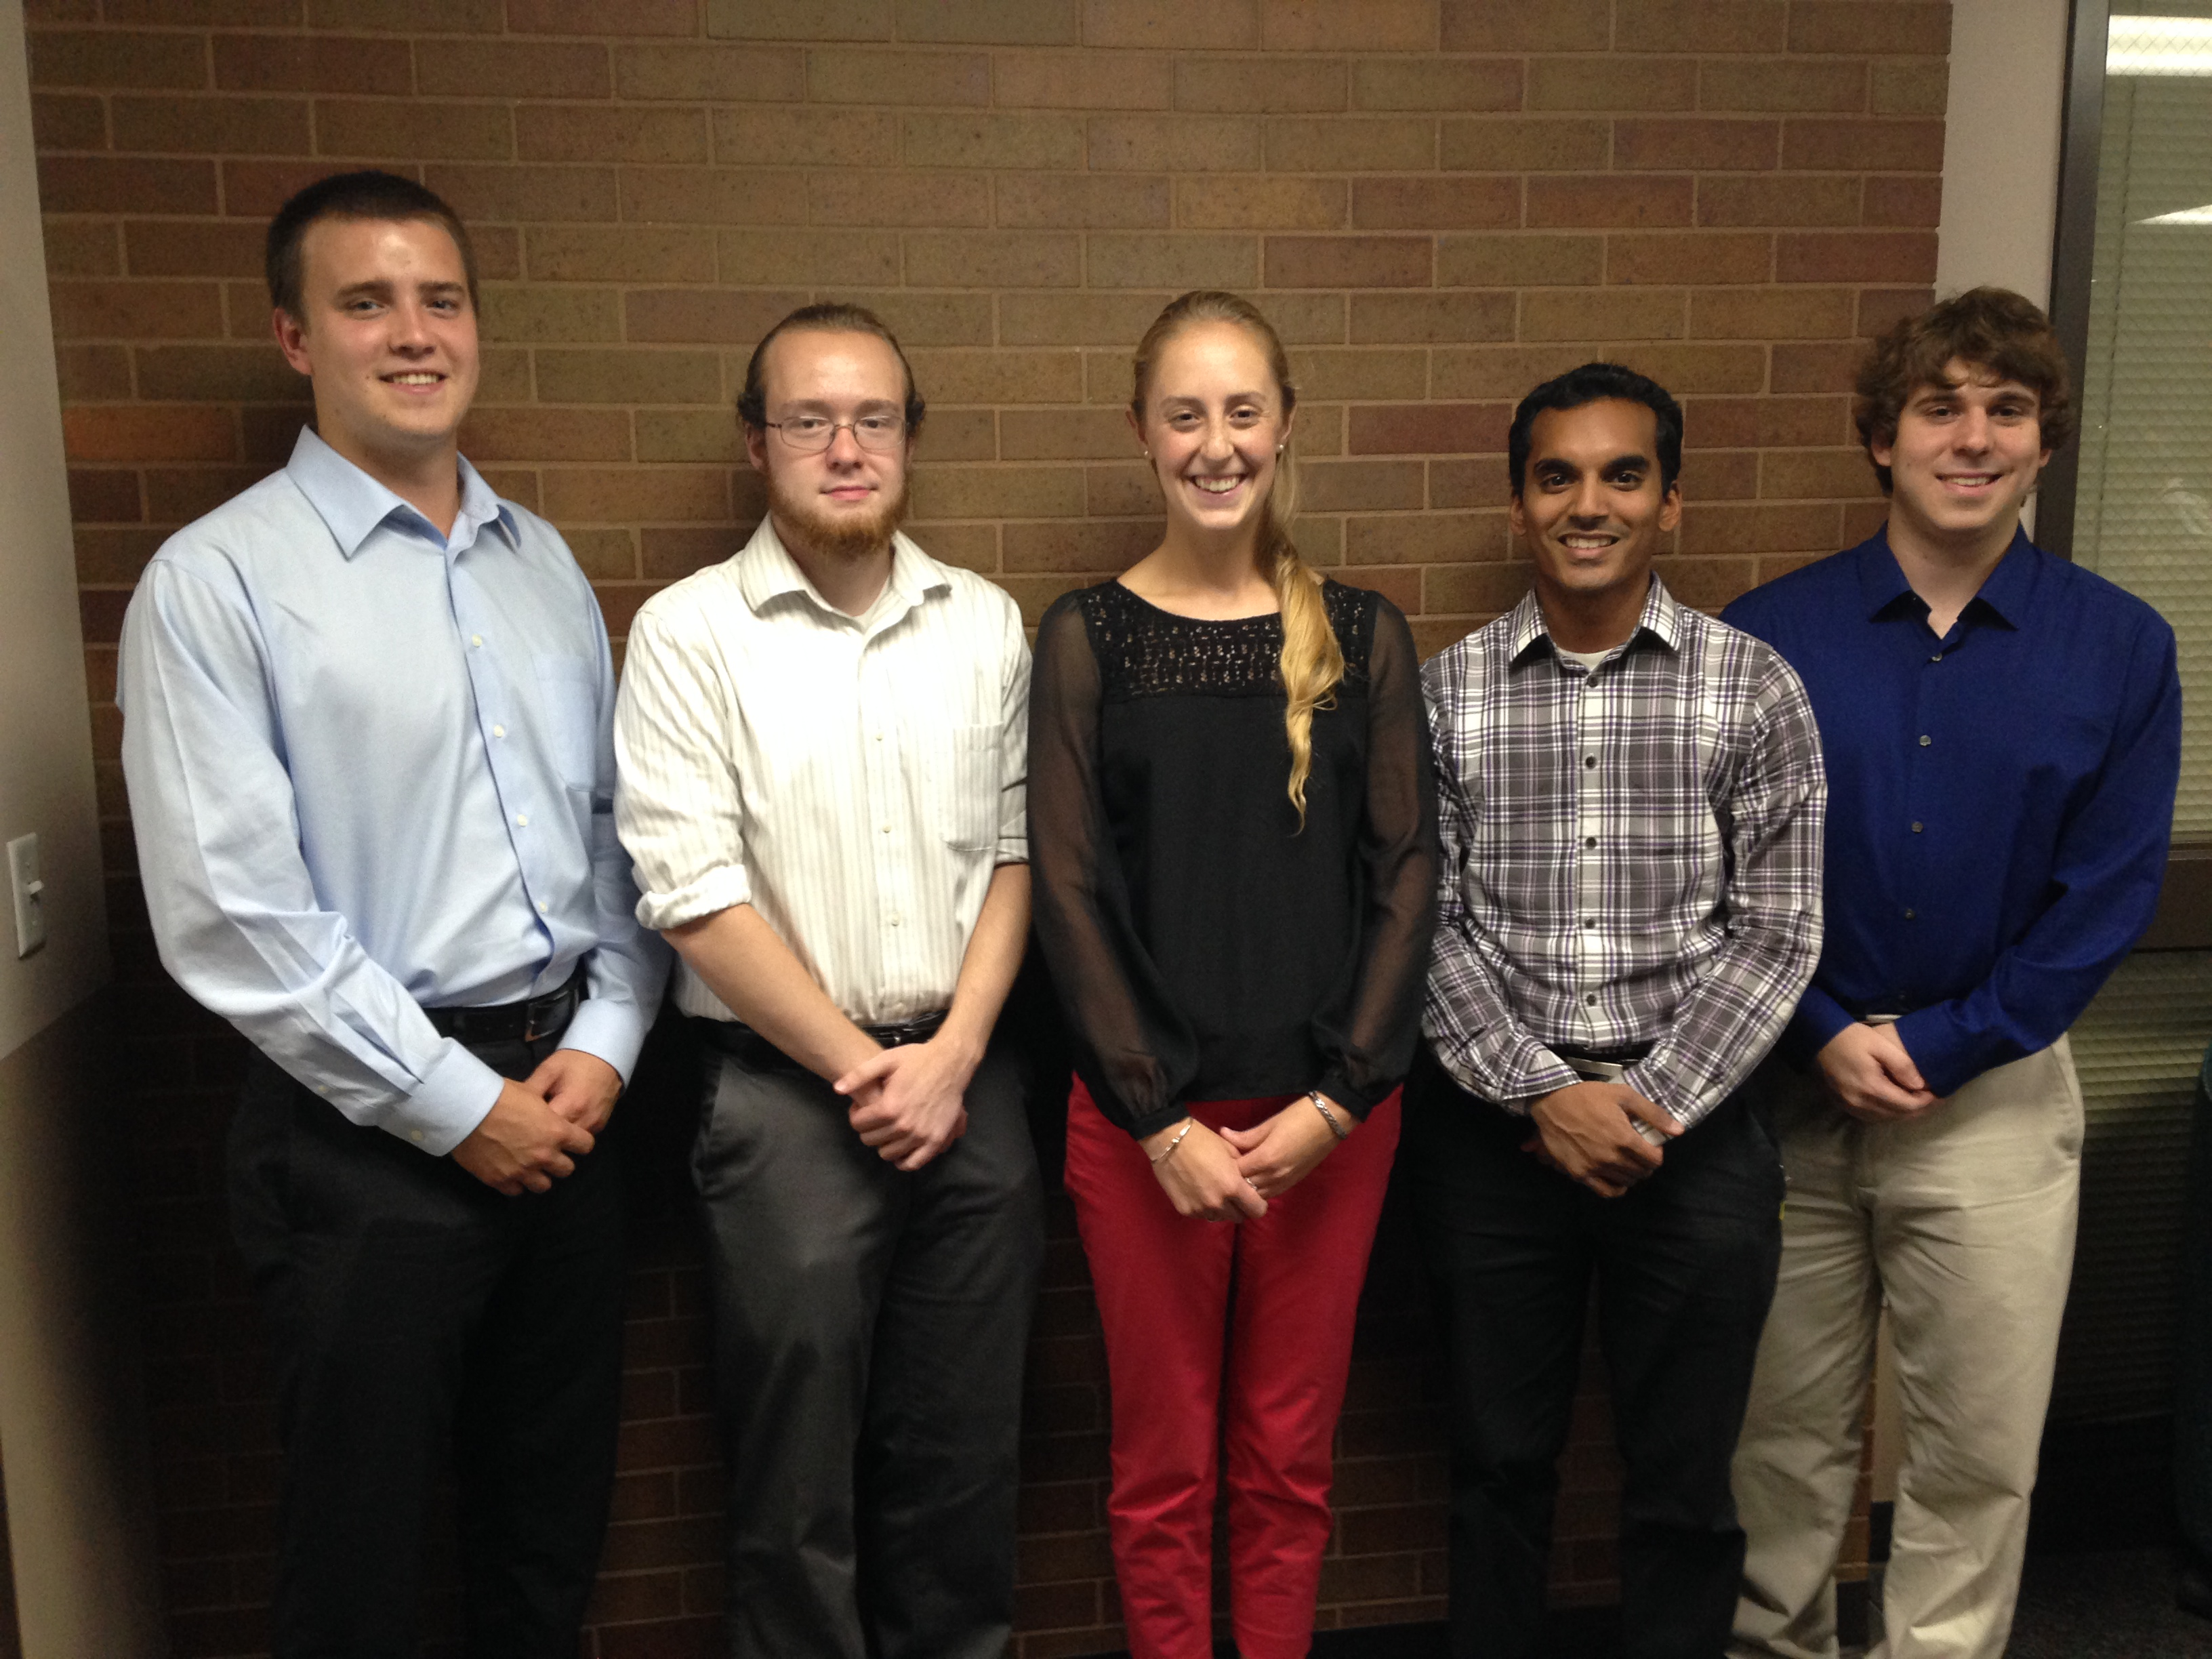 From Left to Right: Mischa Dombovy-Johnson, Dan Consolazio, Ericka Larssen, Keshav Francis, Alex Offredi